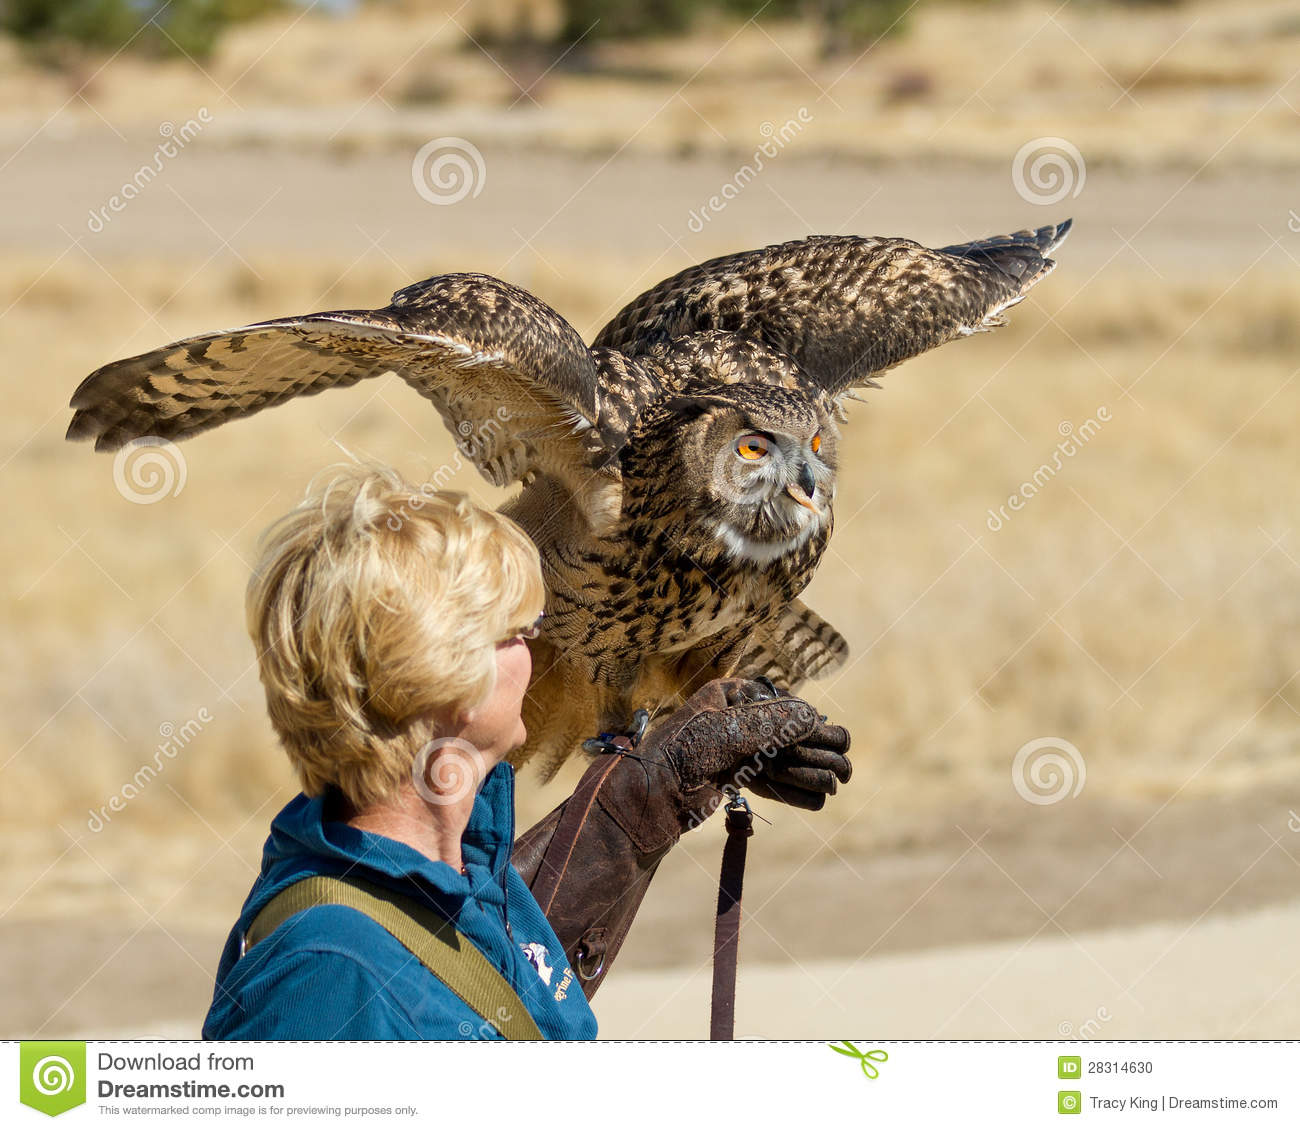 Eagle Owl on a glove looking ready.